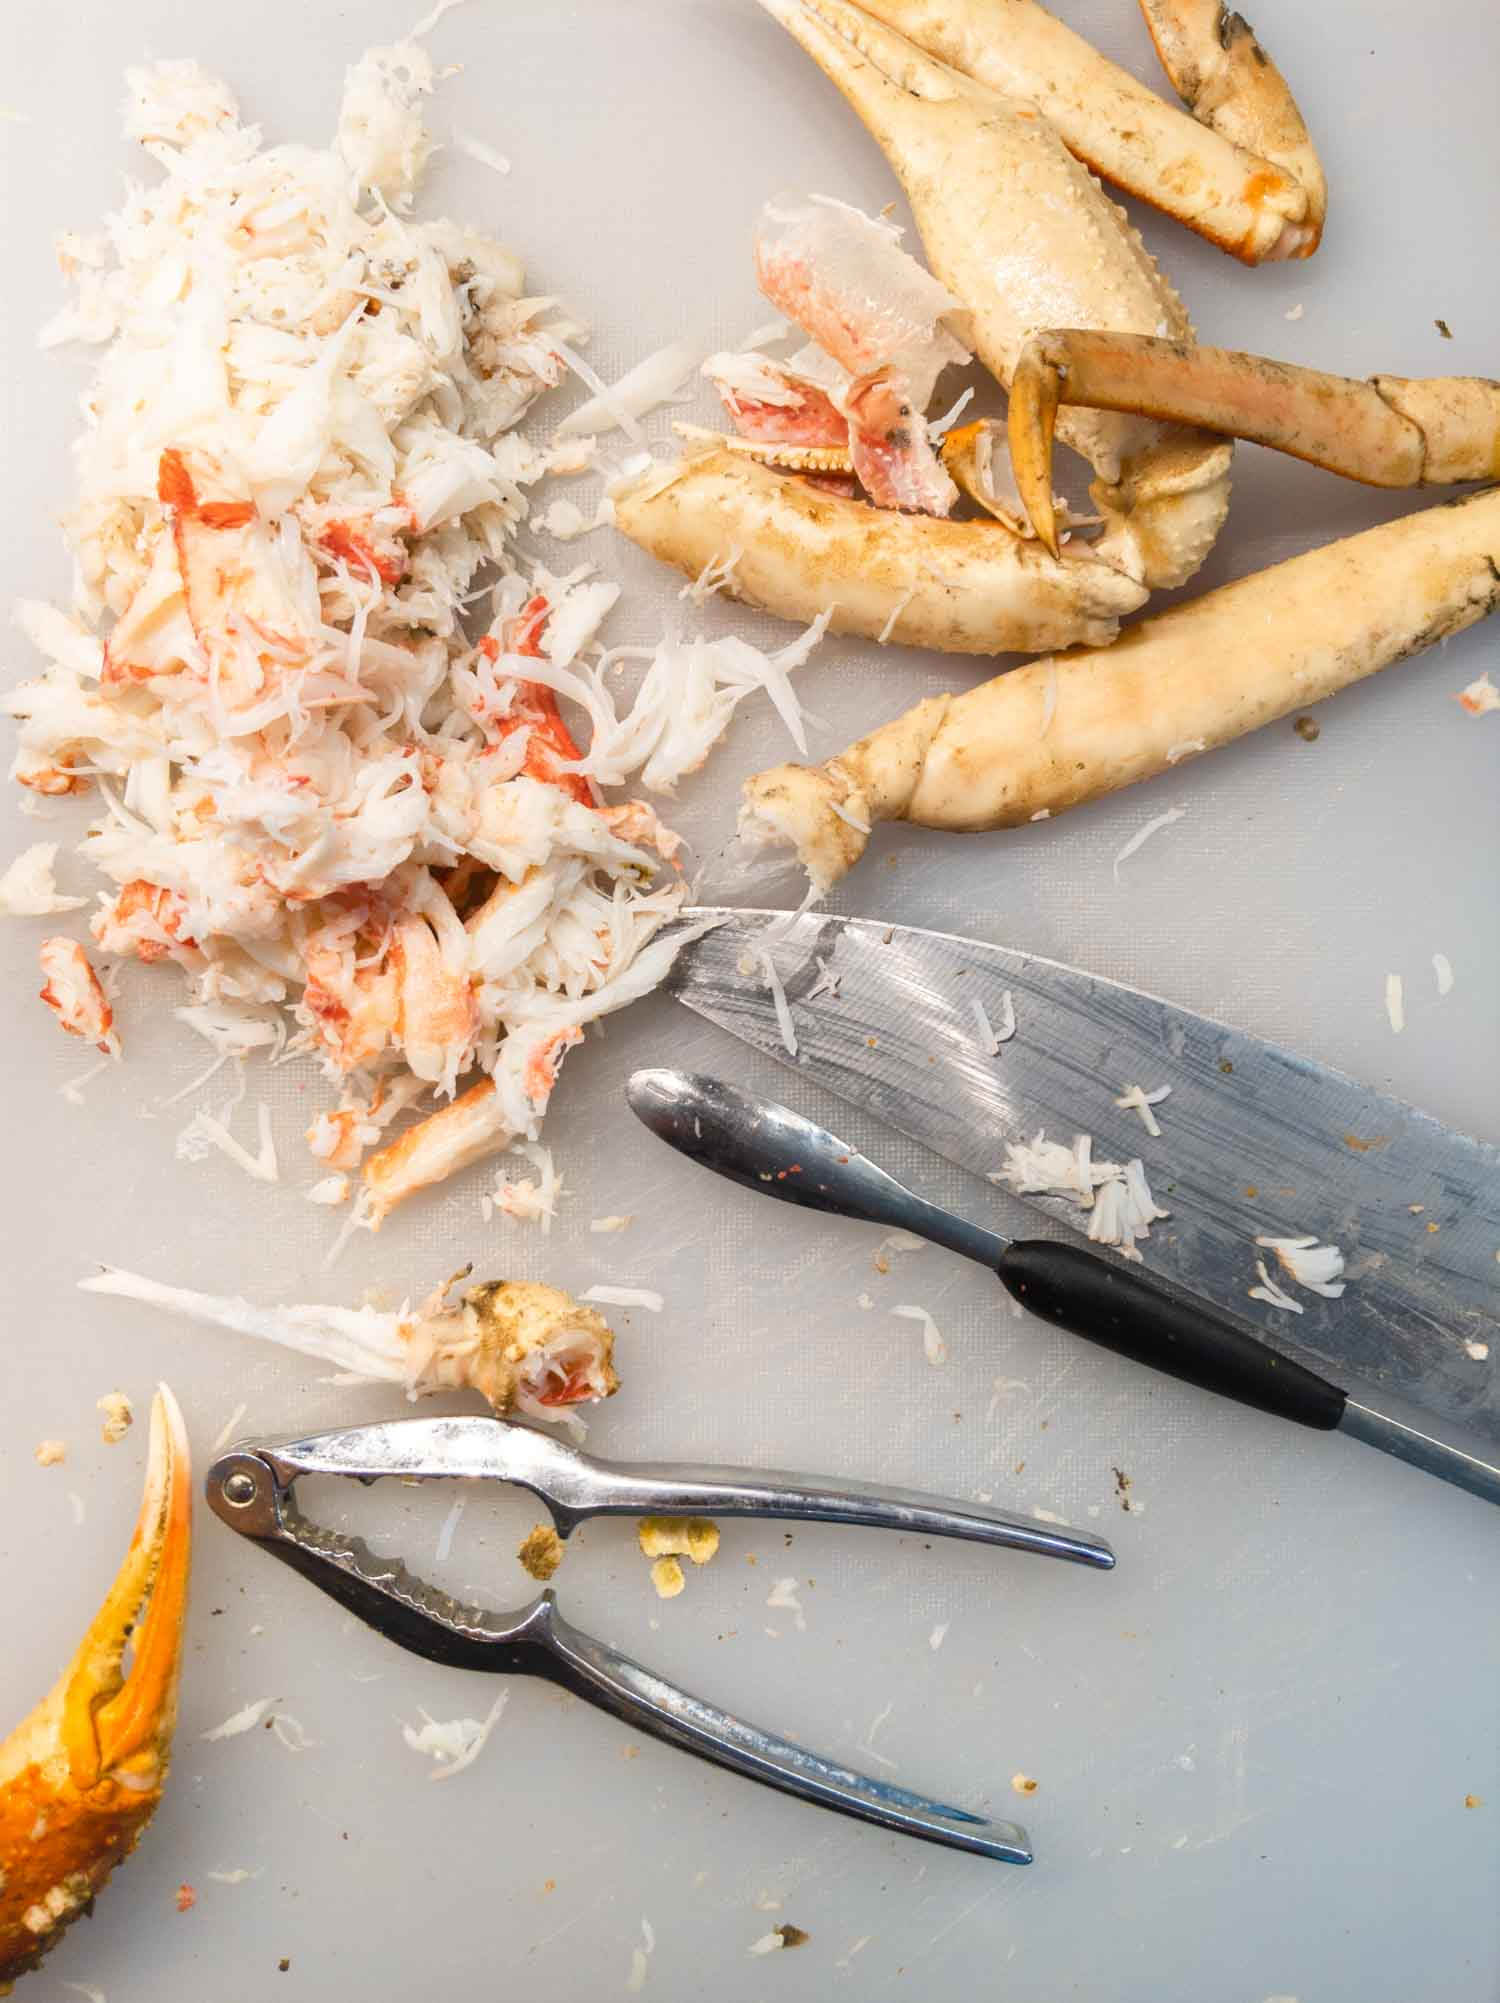 snow crab claws and meat on a white cutting board with a knife and cracker